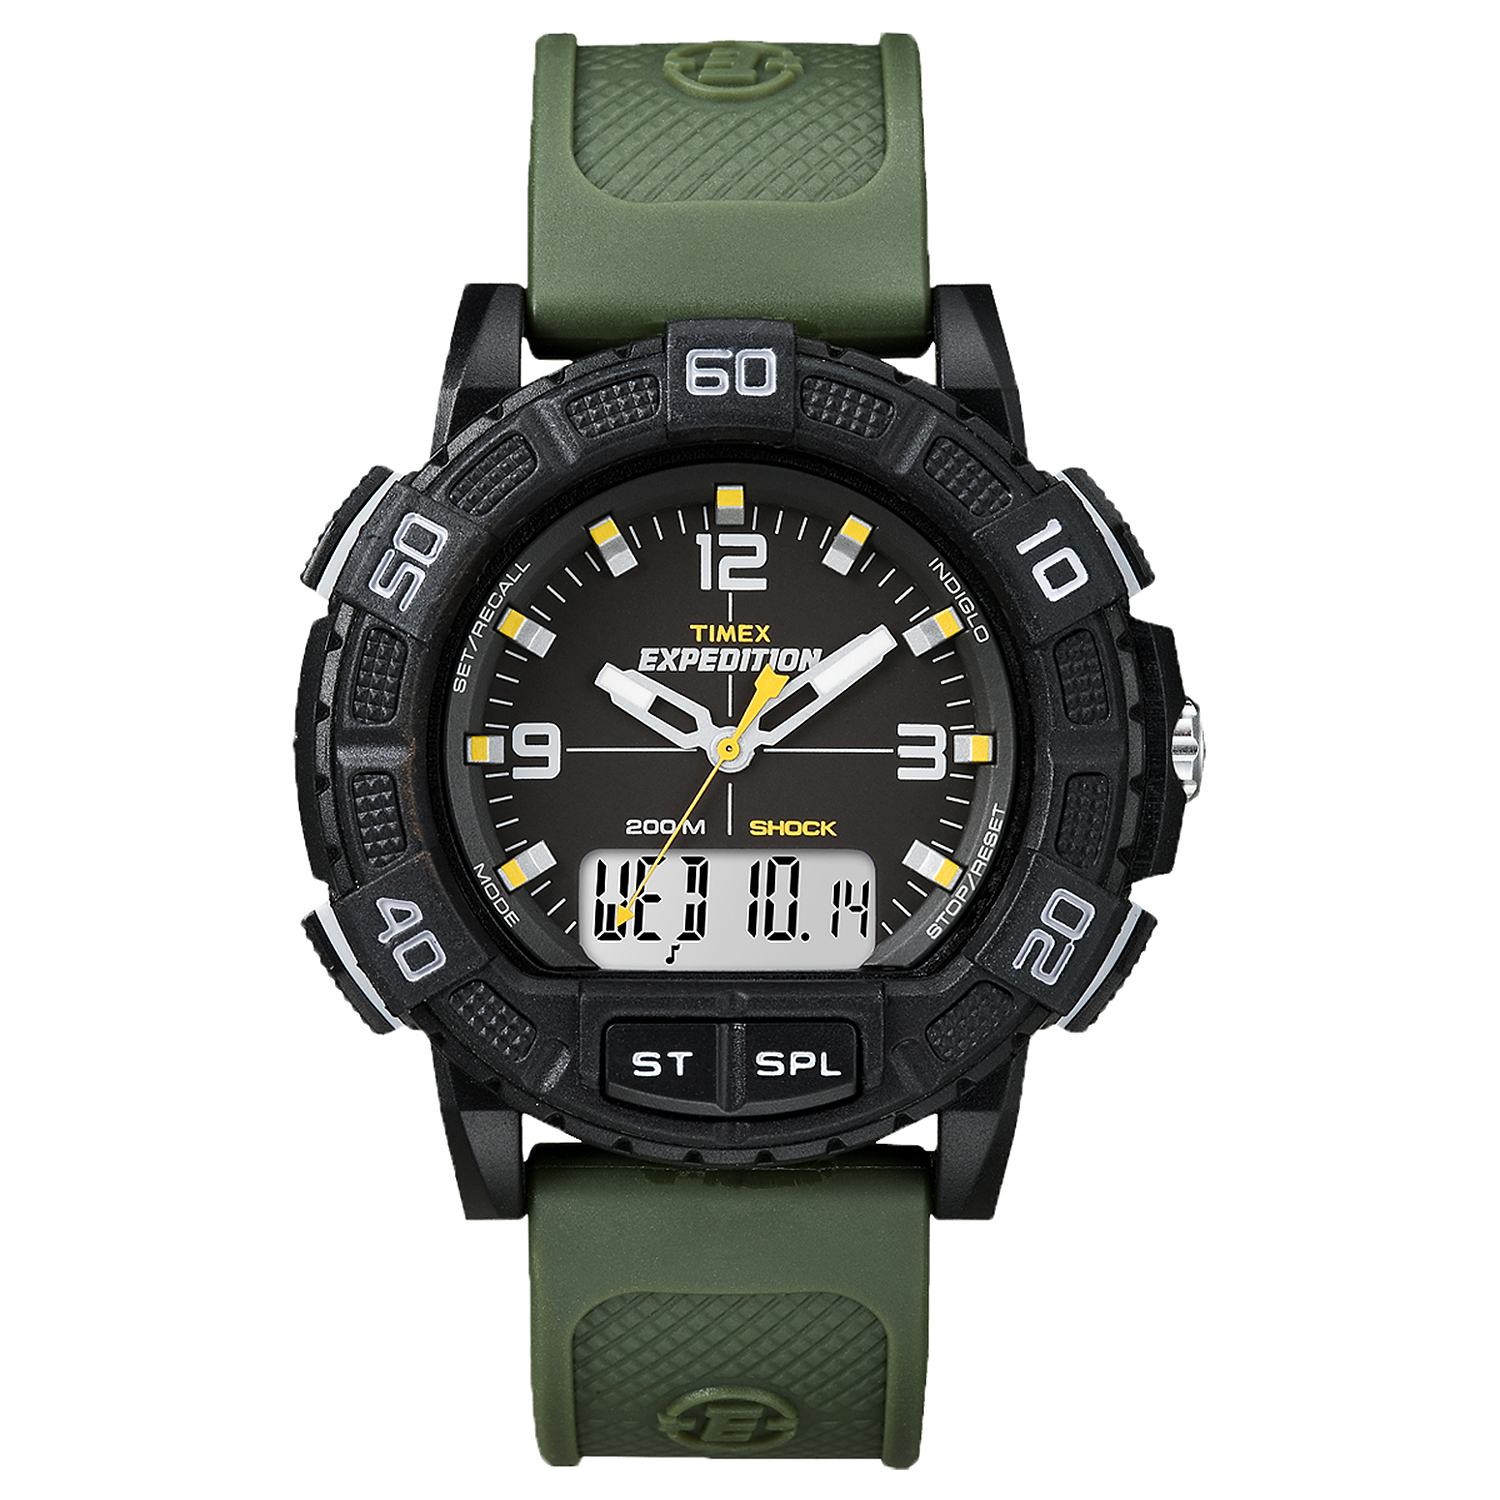 TIMEX T45181 Expedition WR 100m Resin Combo Review - YouTube